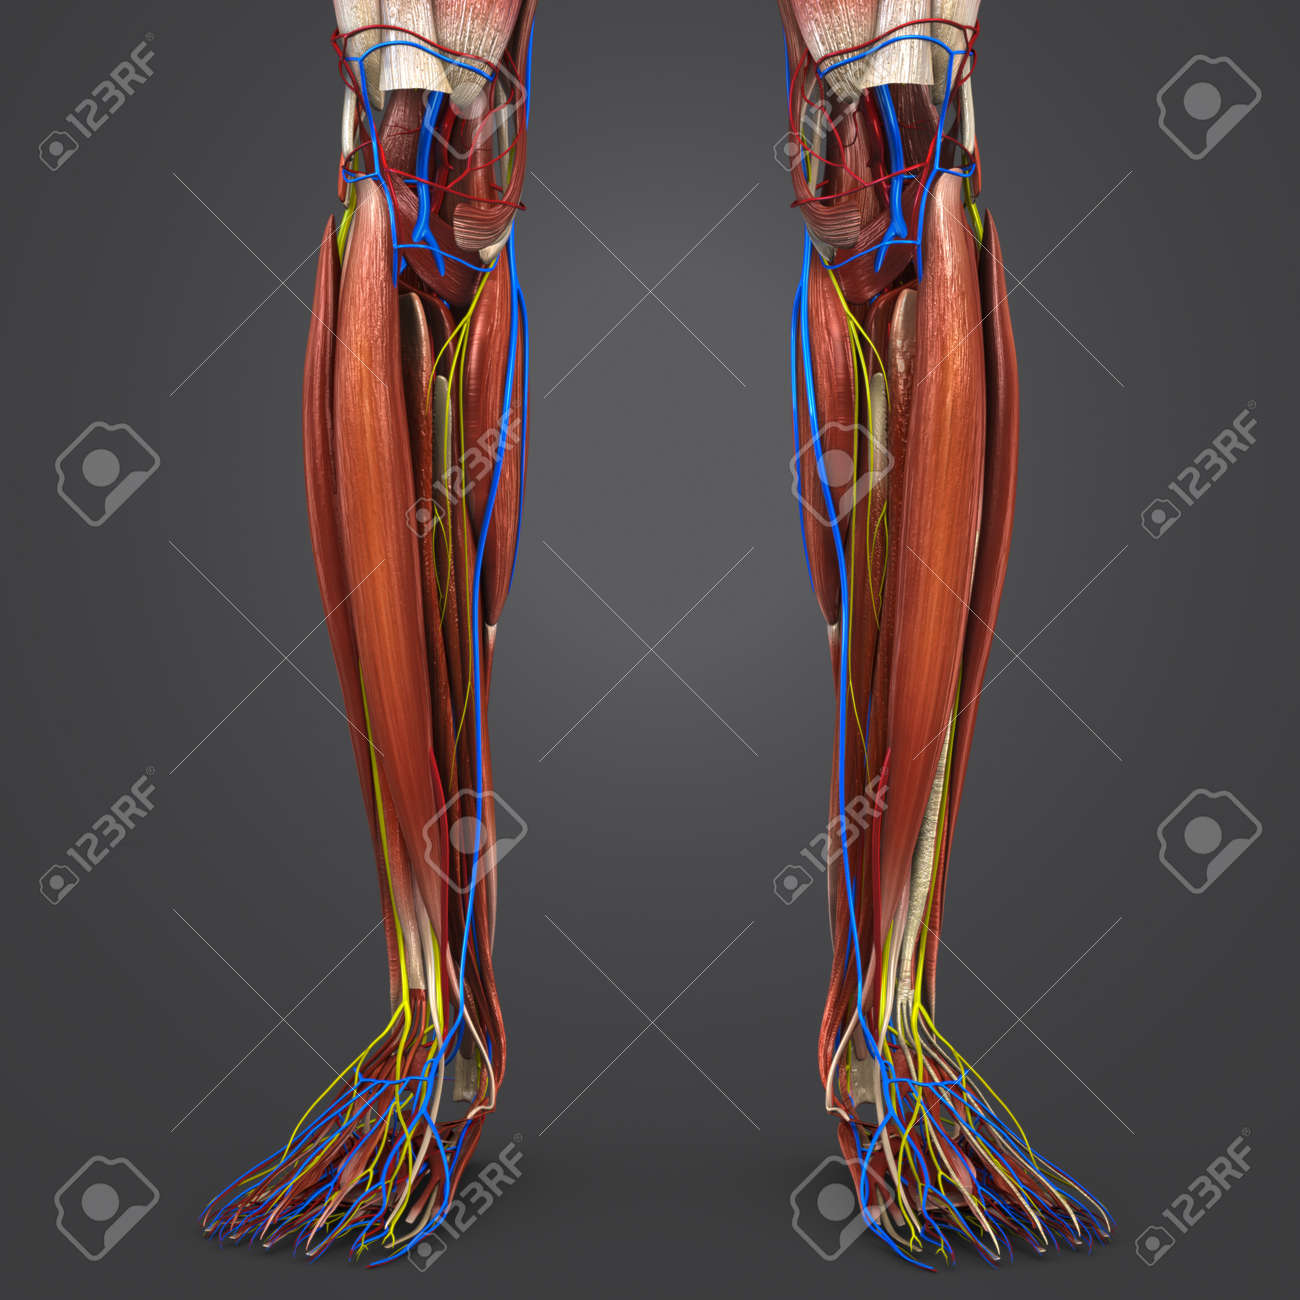 Leg Muscles With Blood Vessels And Nerves Stock Photo Picture And